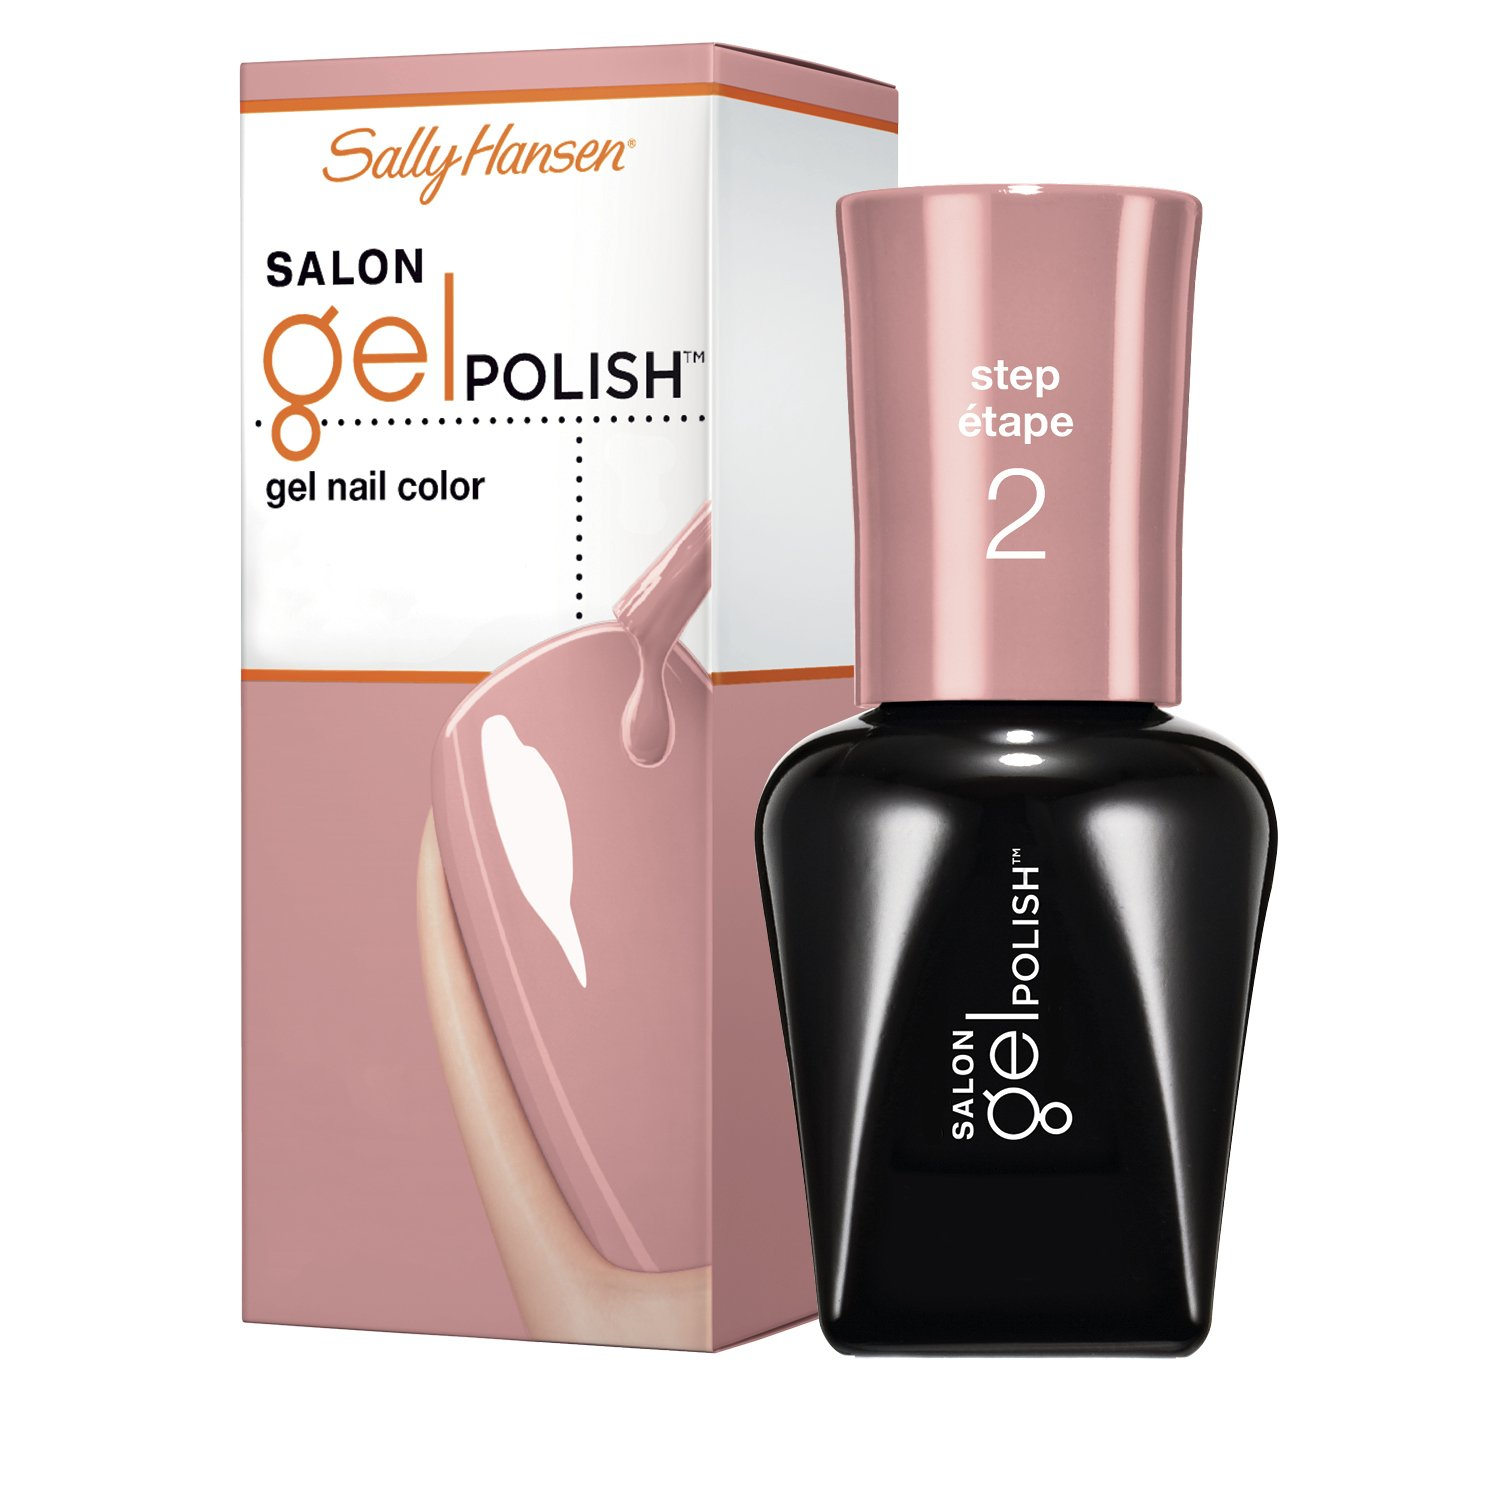 Sally Hansen Salon Pro Gel, Pink Pong, 0.25 Fluid Ounce